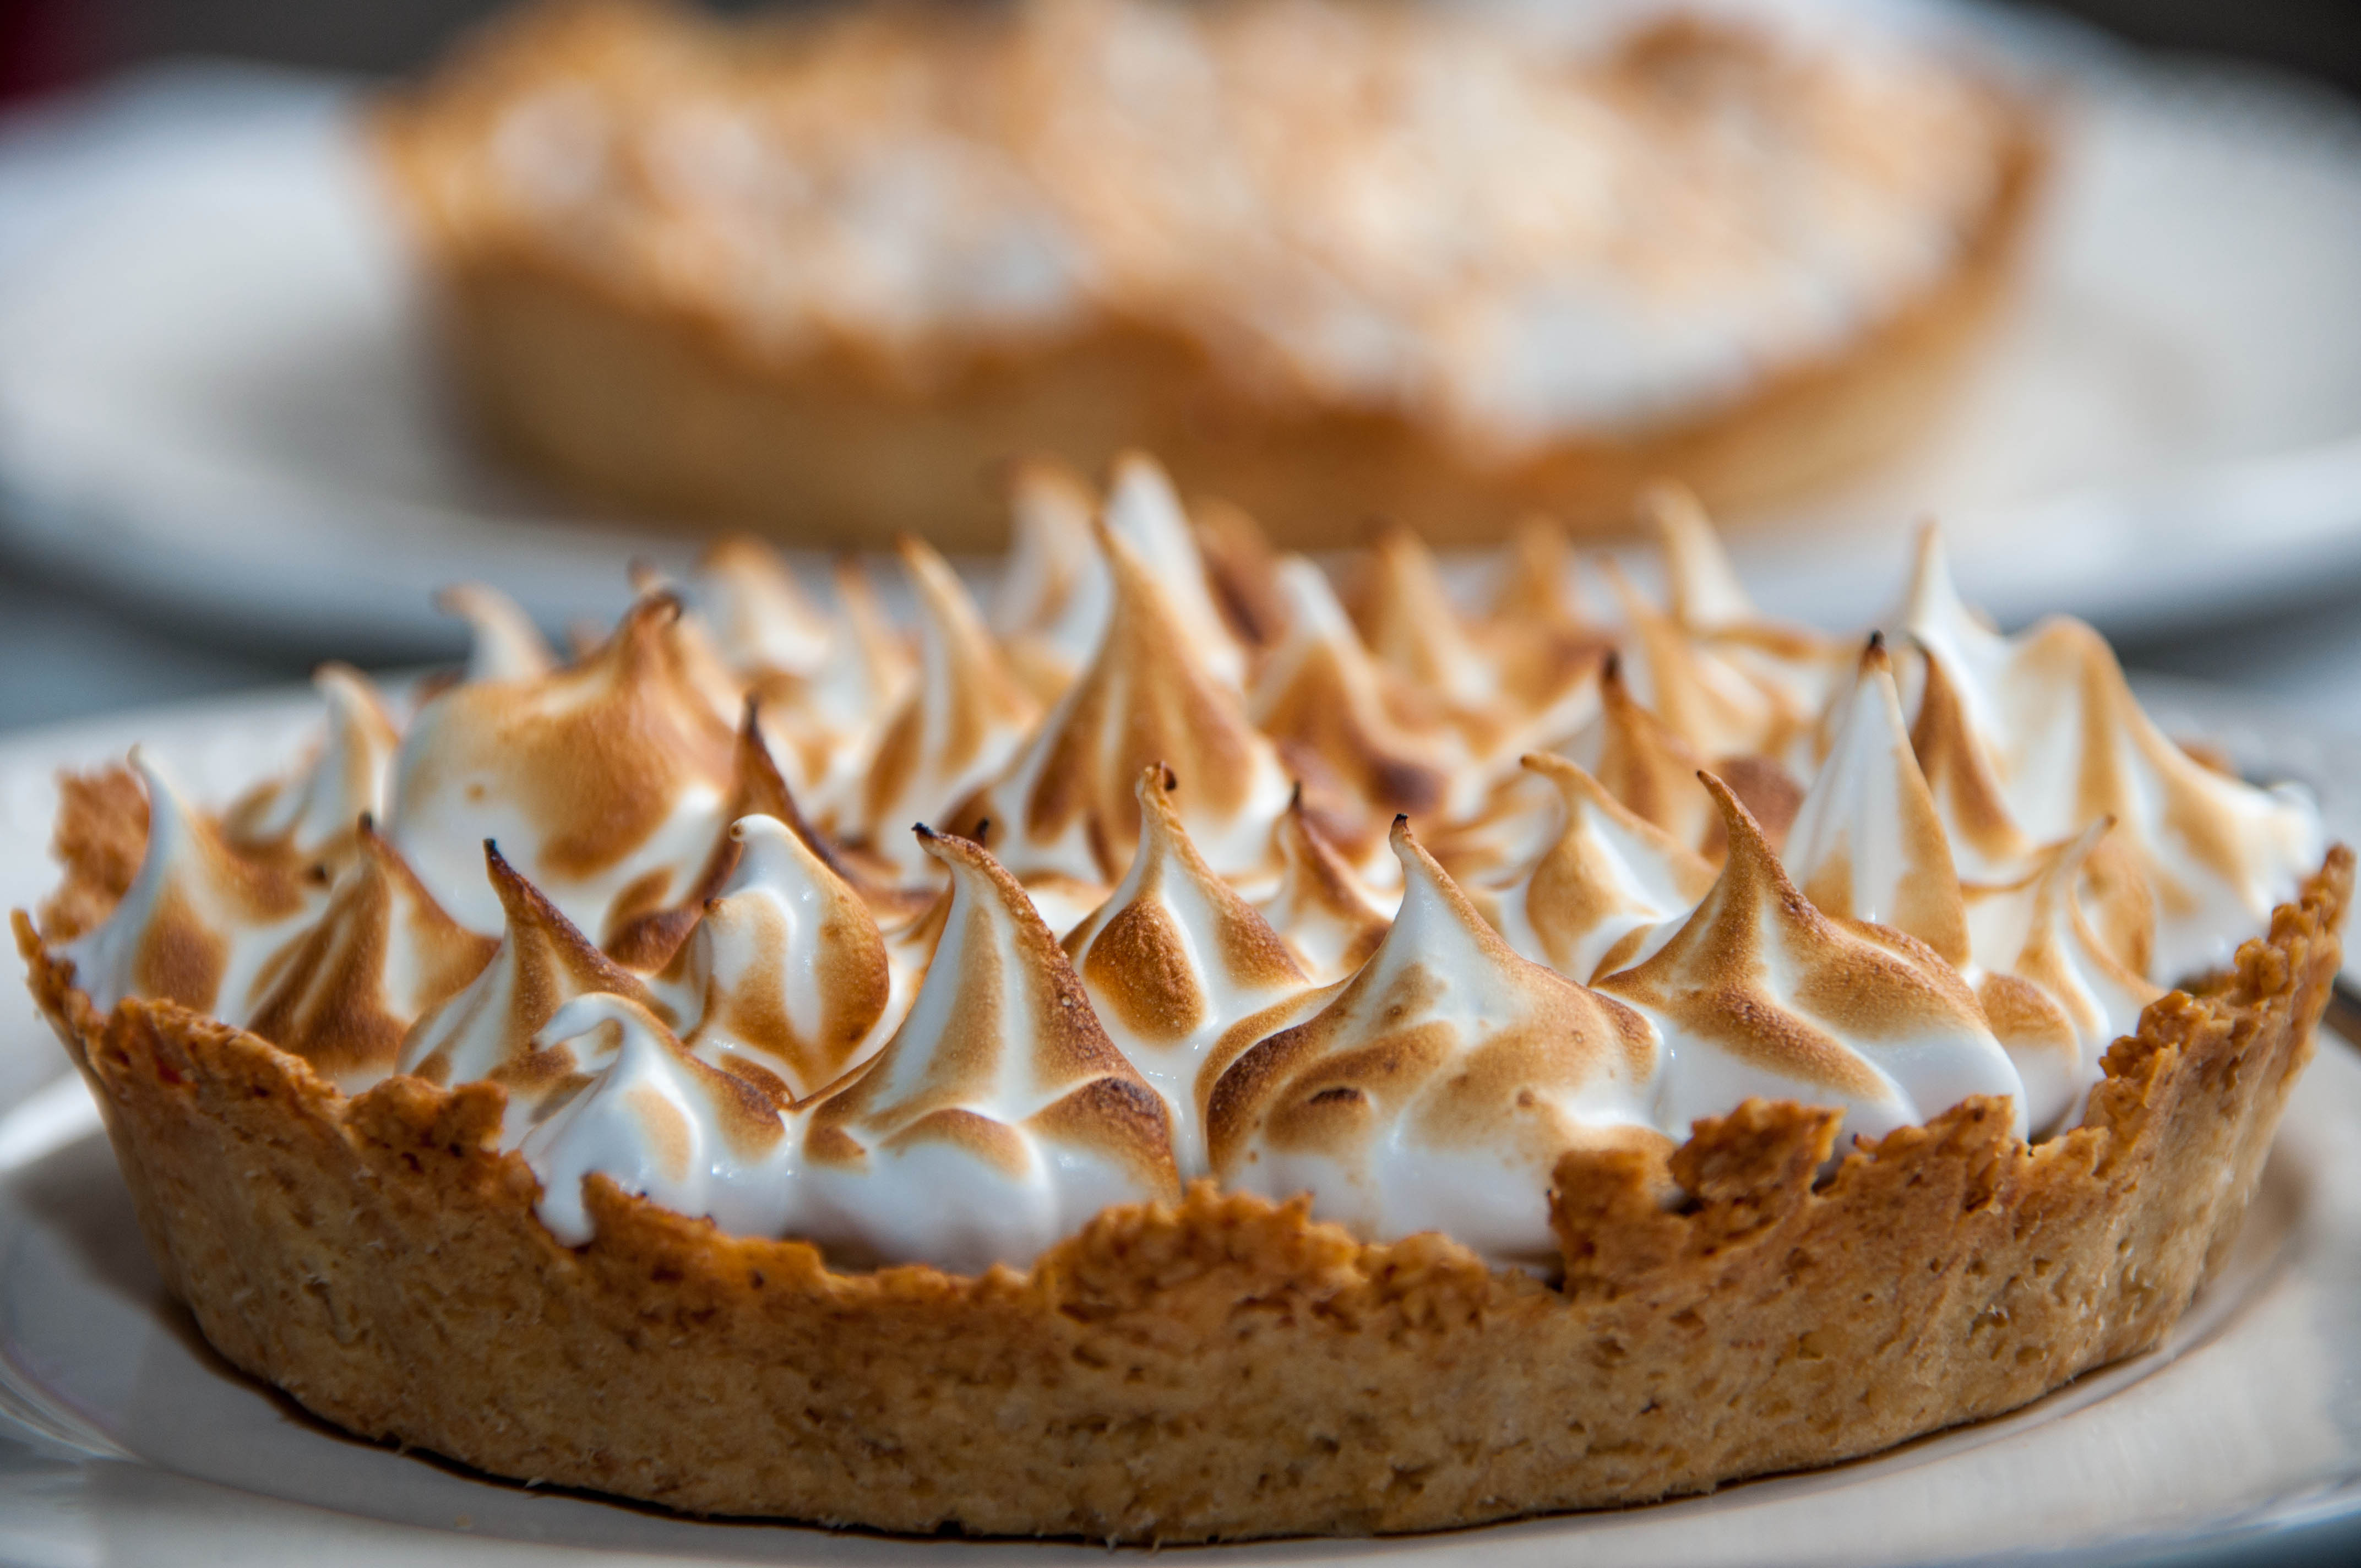 301 moved permanently - Recette tarte citron meringuee ...